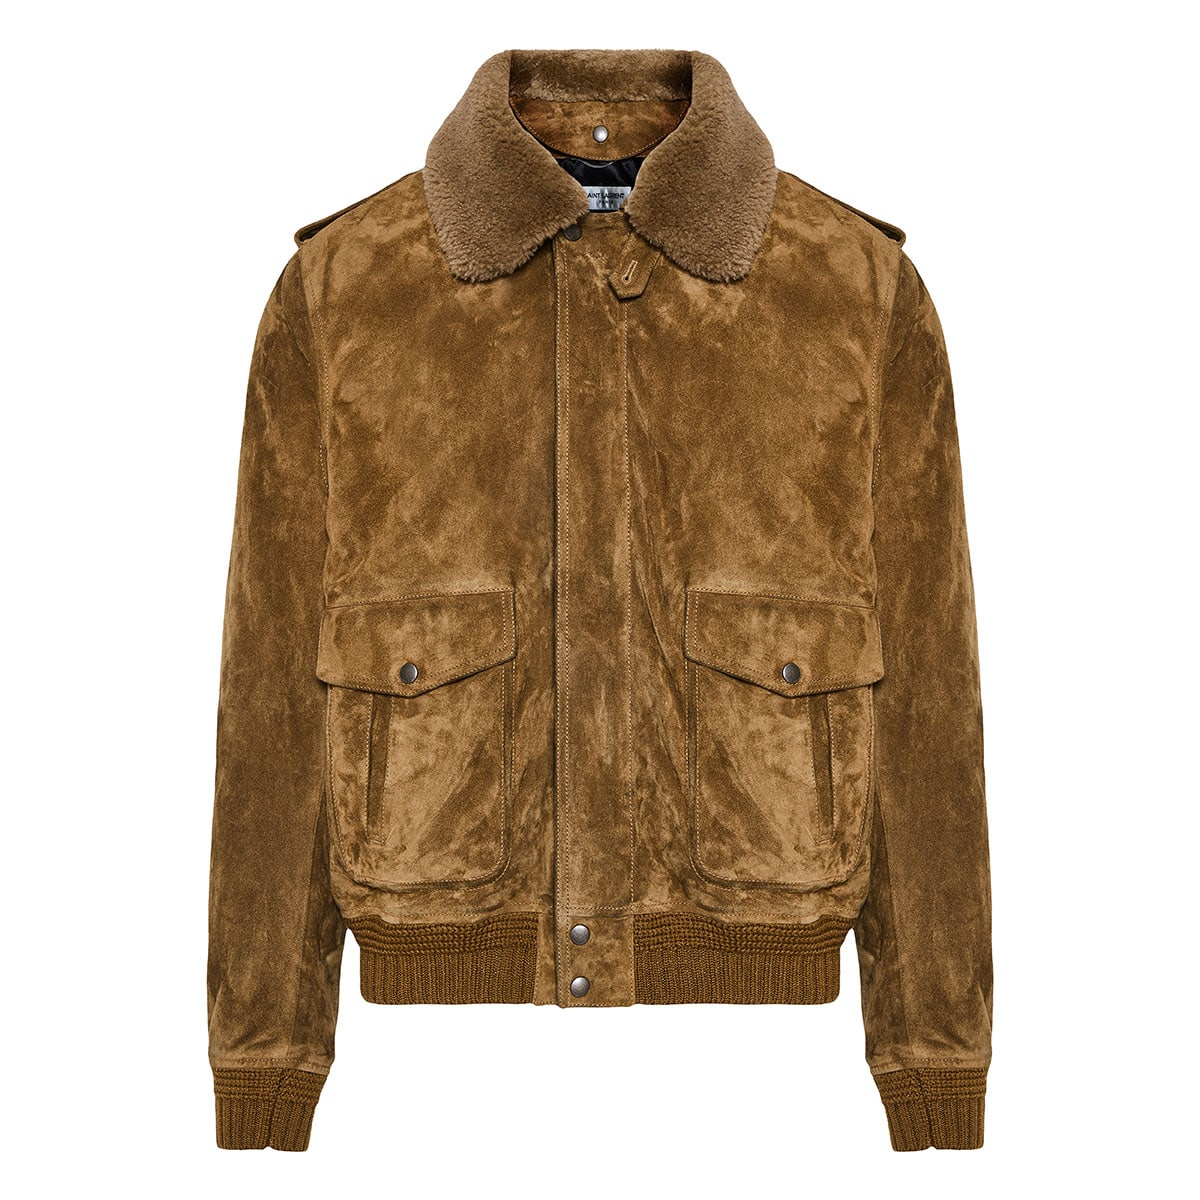 Shearling-trimmed suede jacket